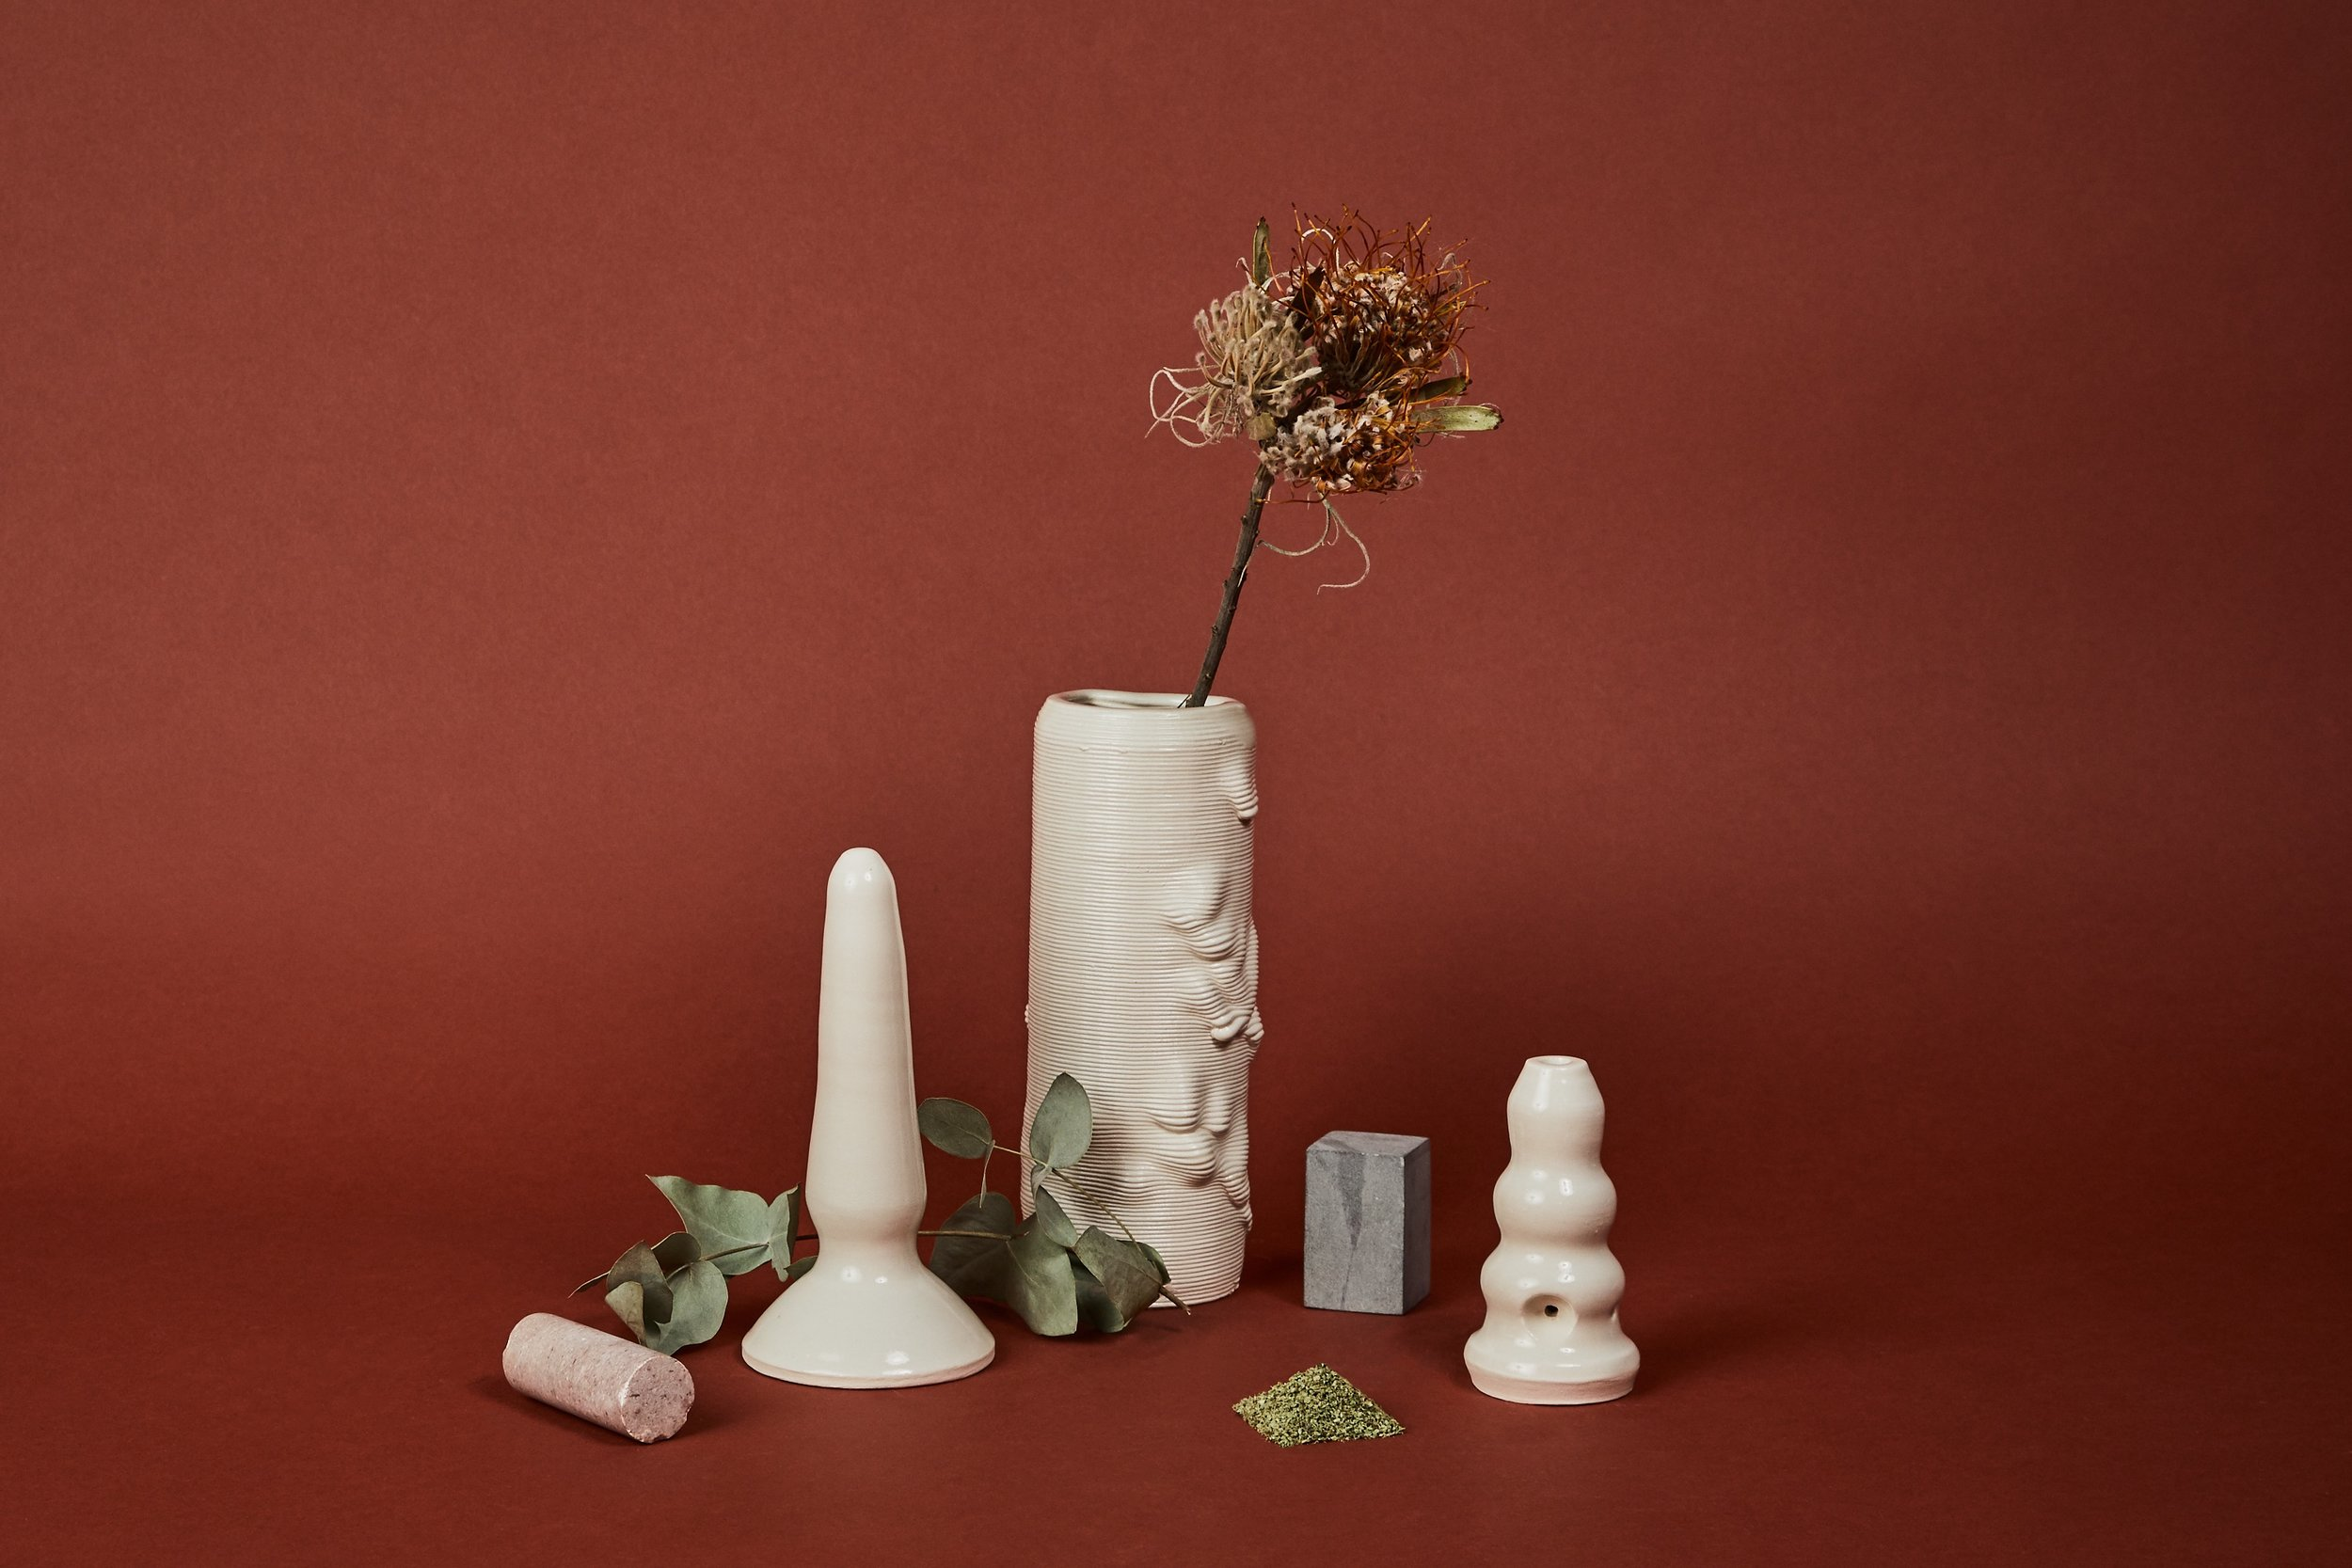 Left to right: unicorn, 3D printed vase, sculptural pipe.